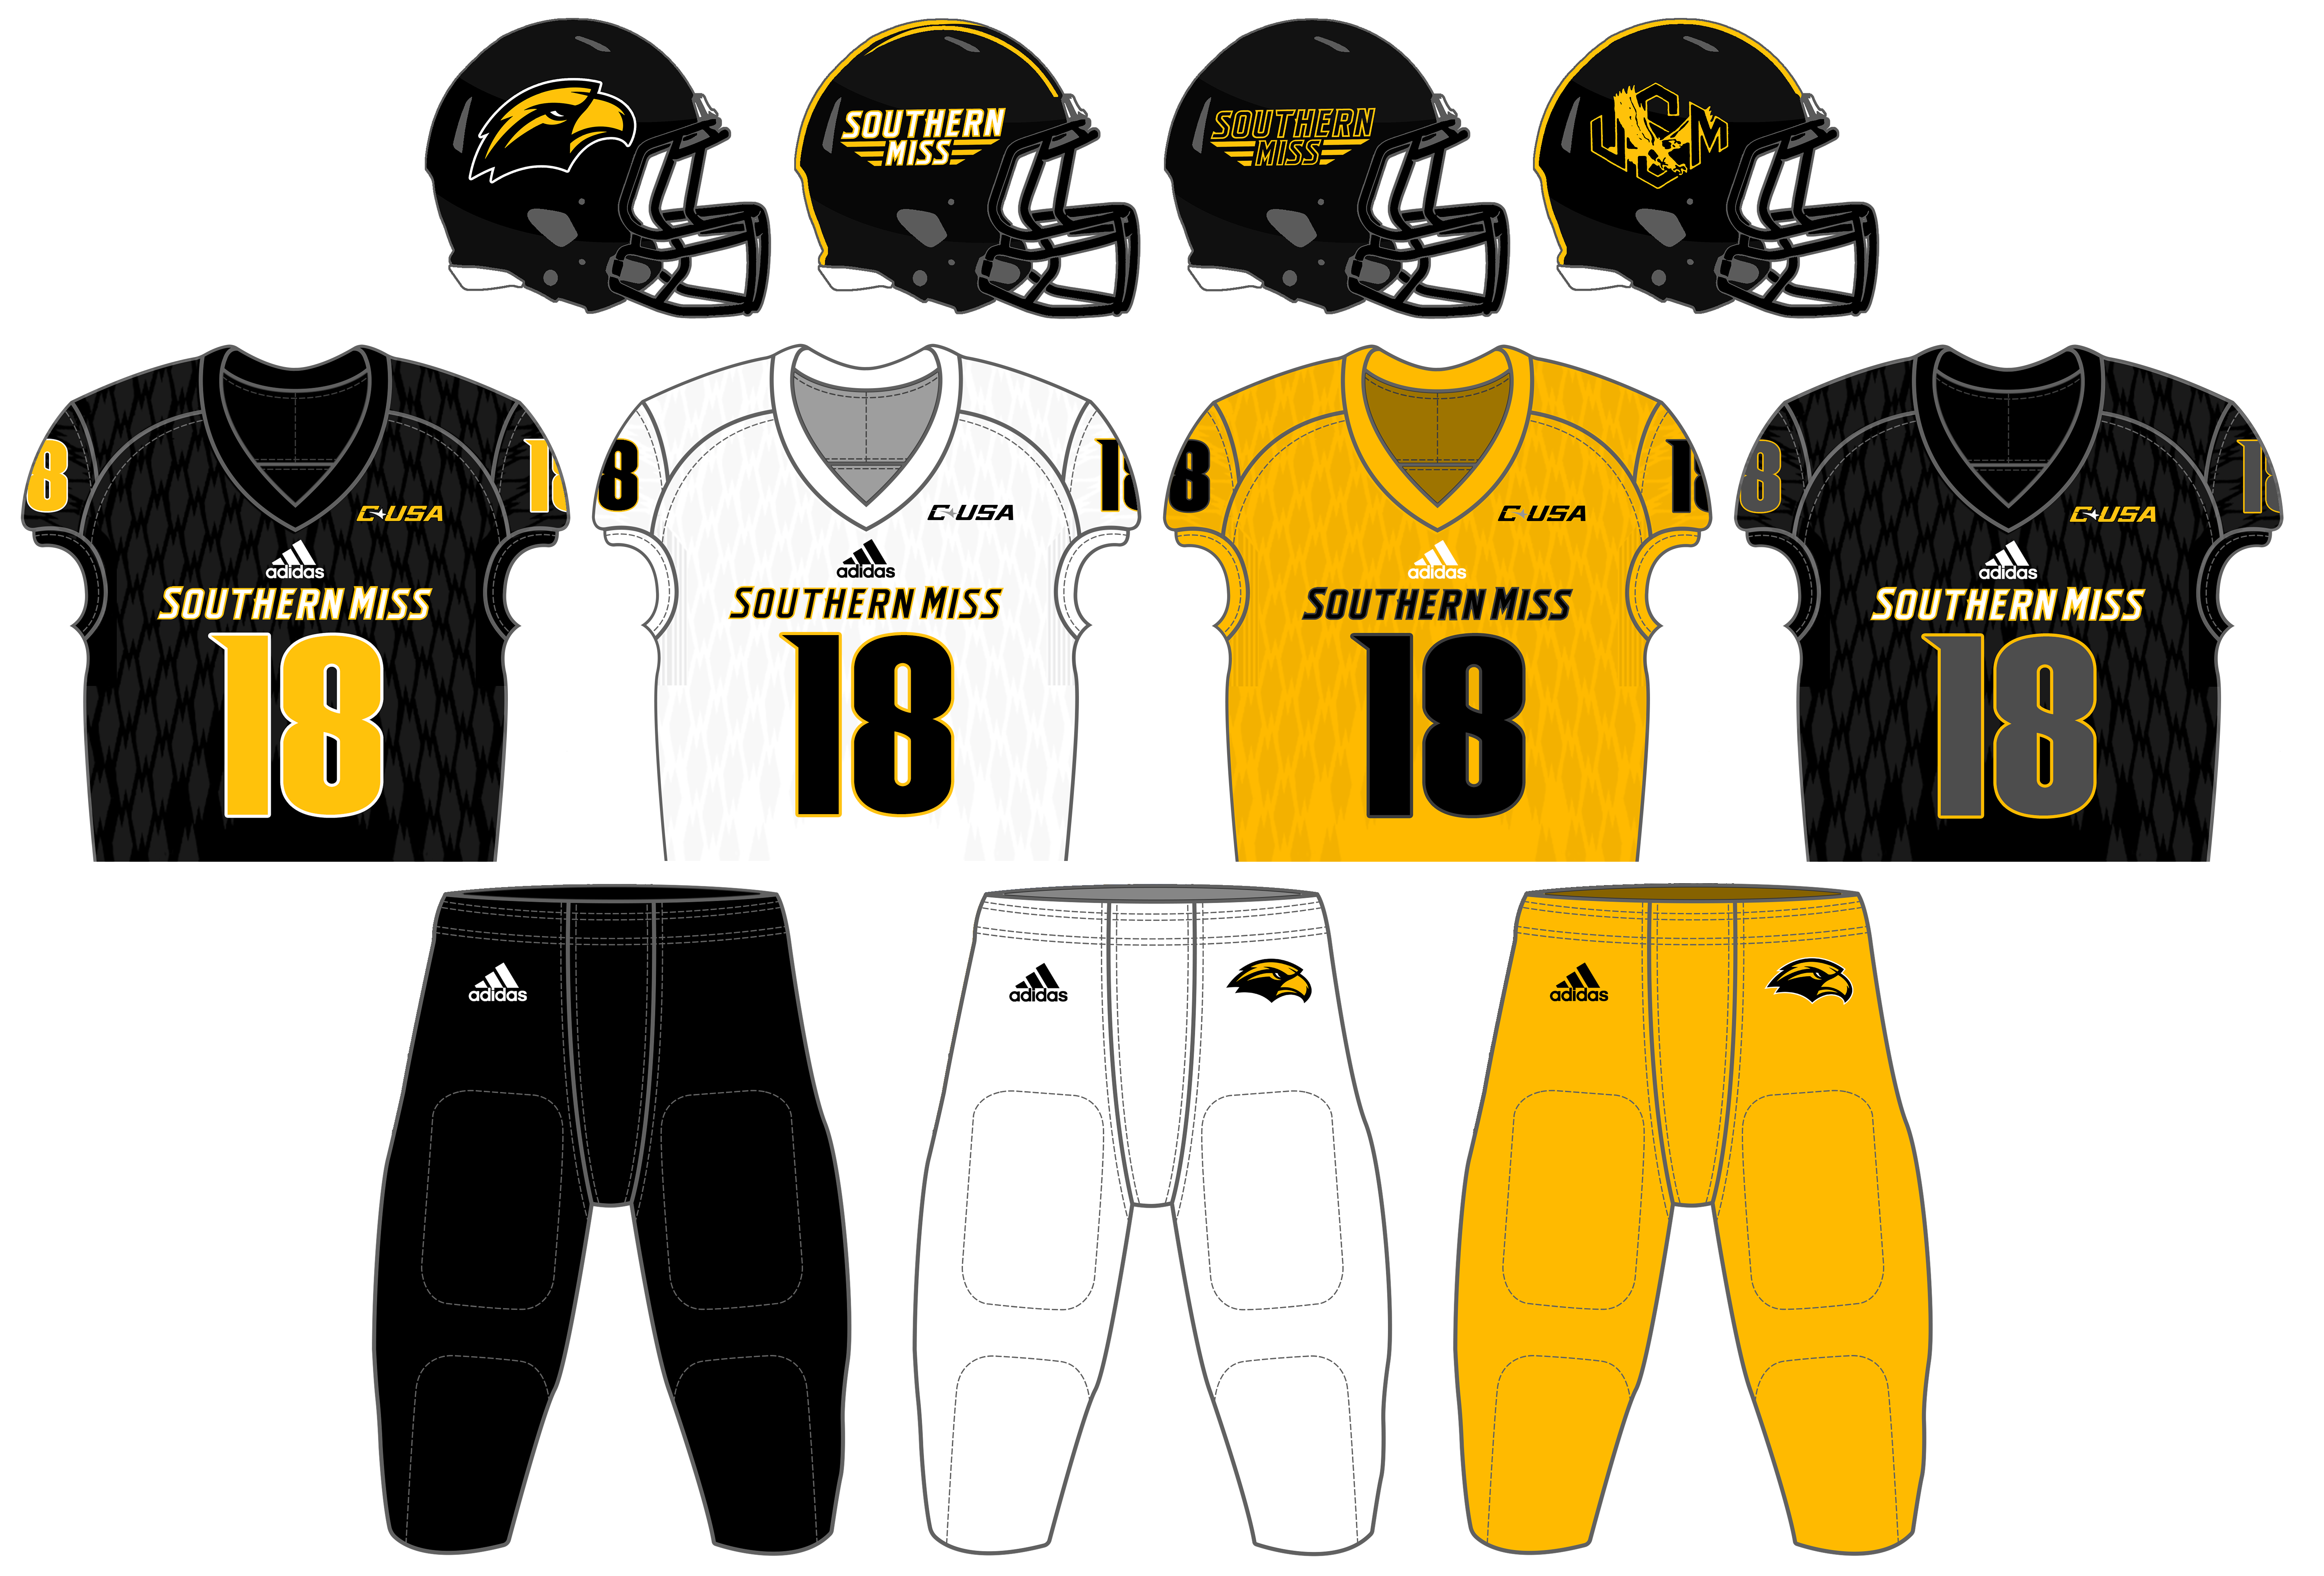 Southern Miss Golden Eagles football - Wikipedia 176c97f9e